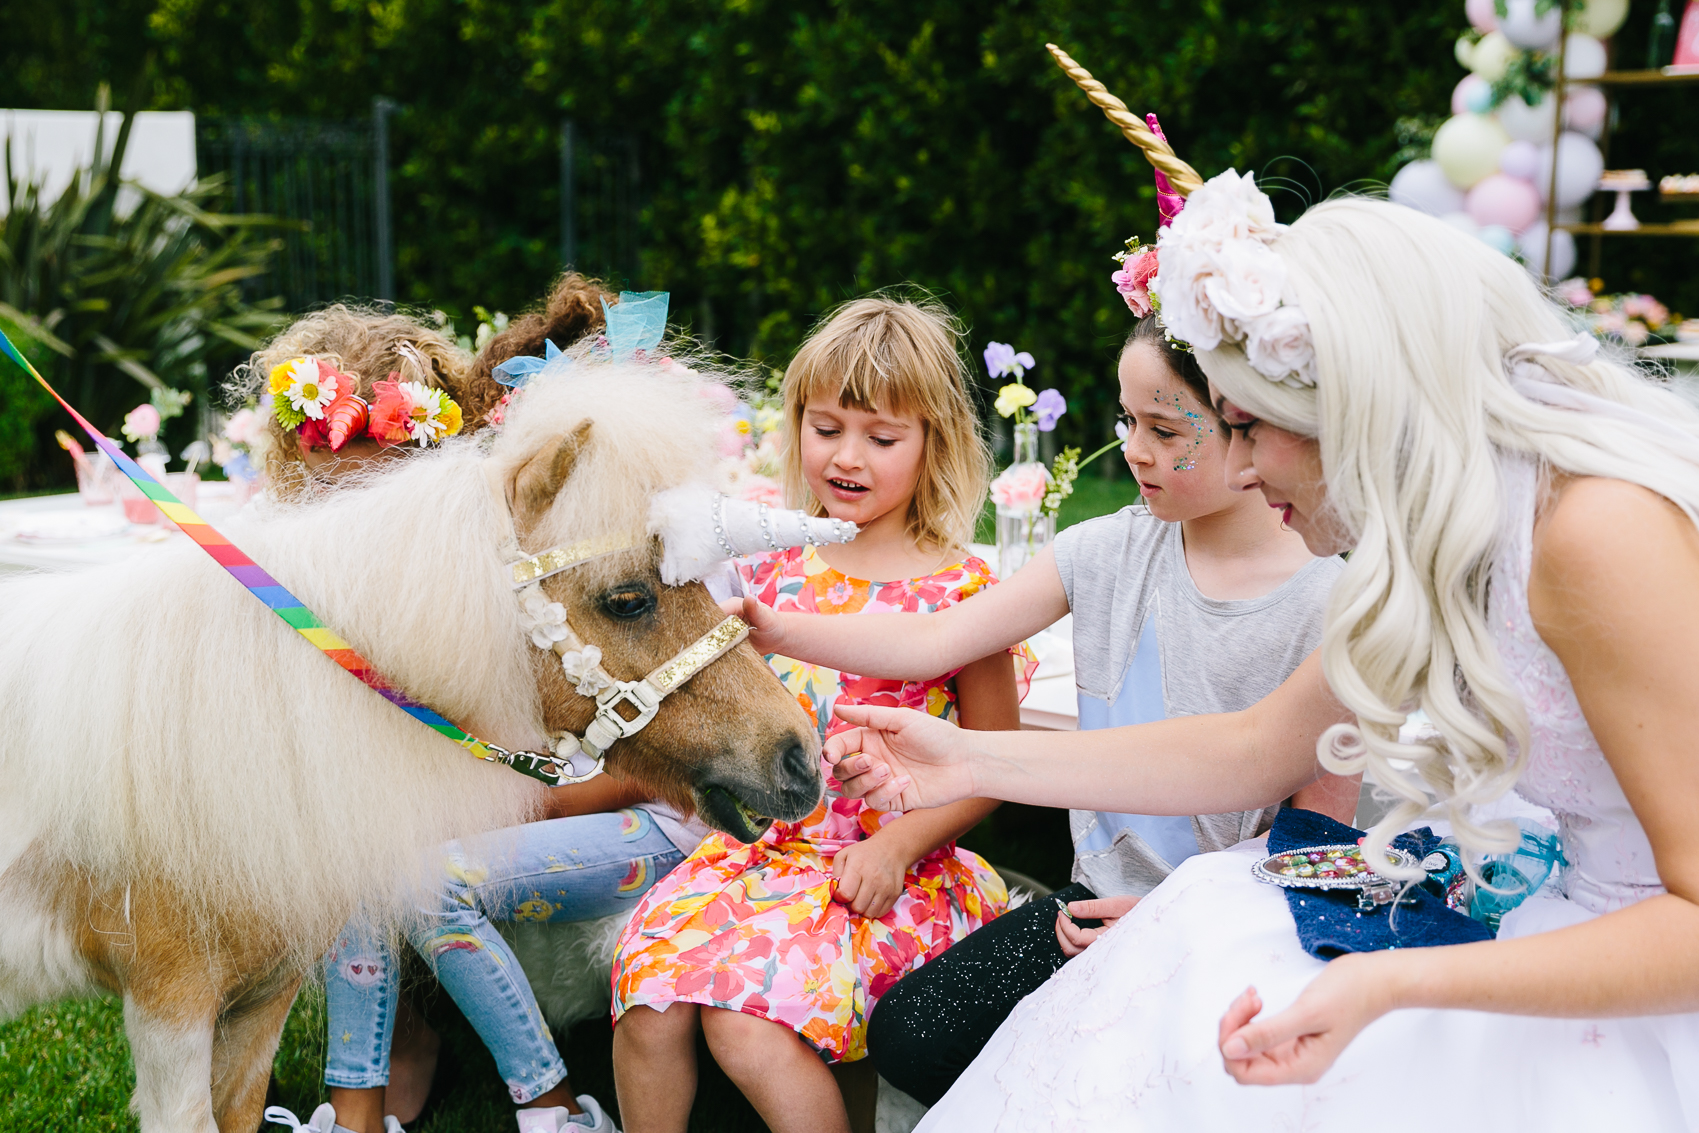 Los_Angeles_Family_Photographer_Luxury_Childrens_Party_Beverly_Hills_Unicorn_Birthday_Party-1030.jpg